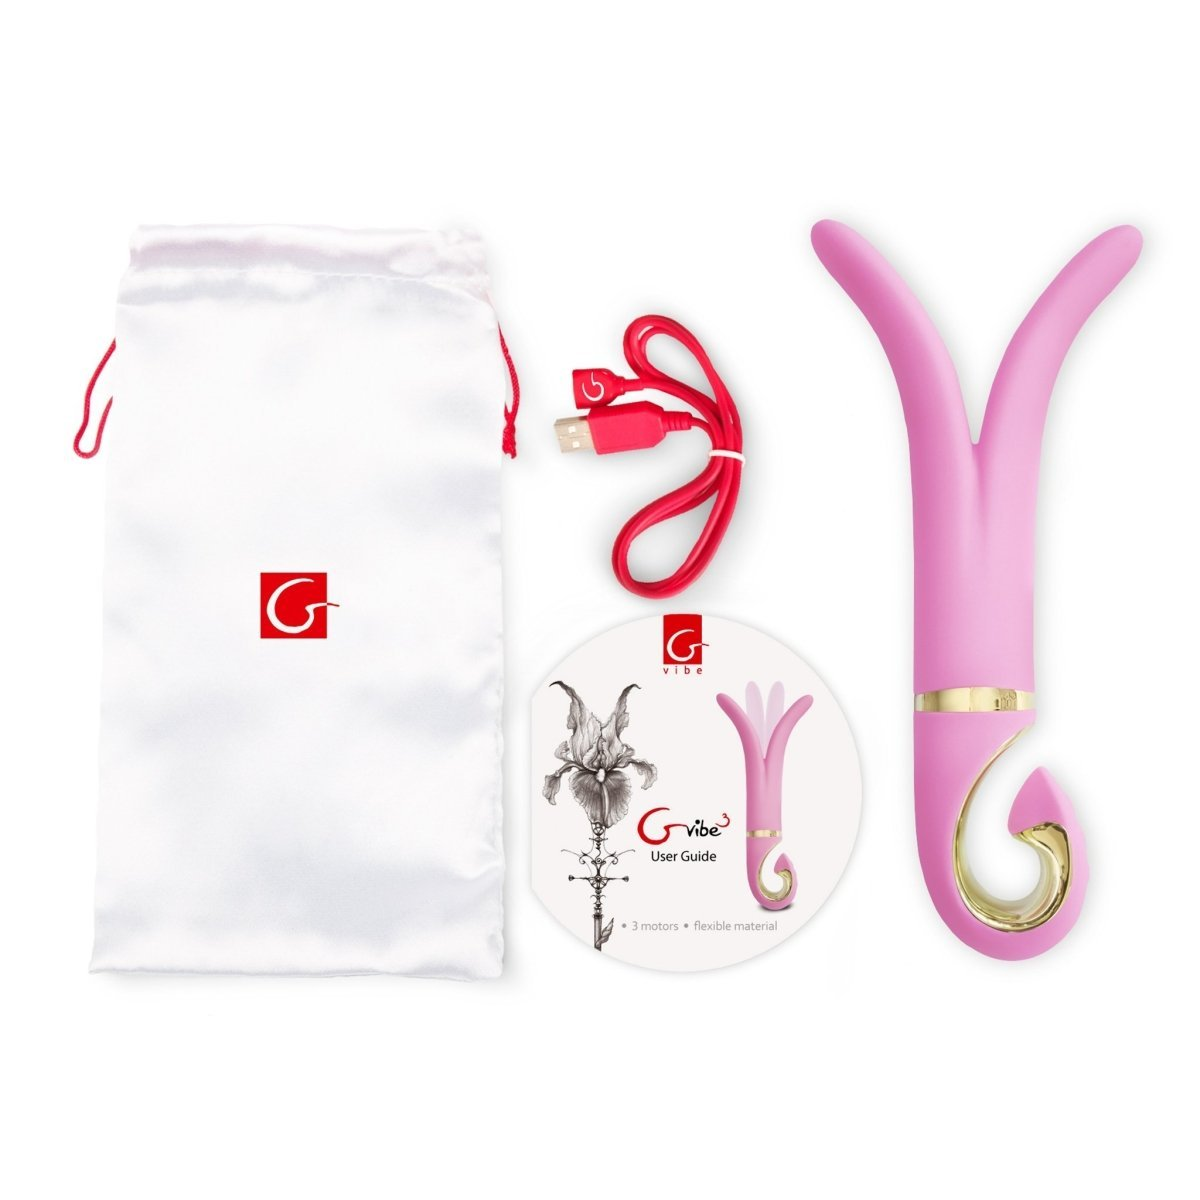 Gvibe 3 - Candy Pink - Double Vibrator For Vagina And Anus - Buy Sex Toys Gvibe.com